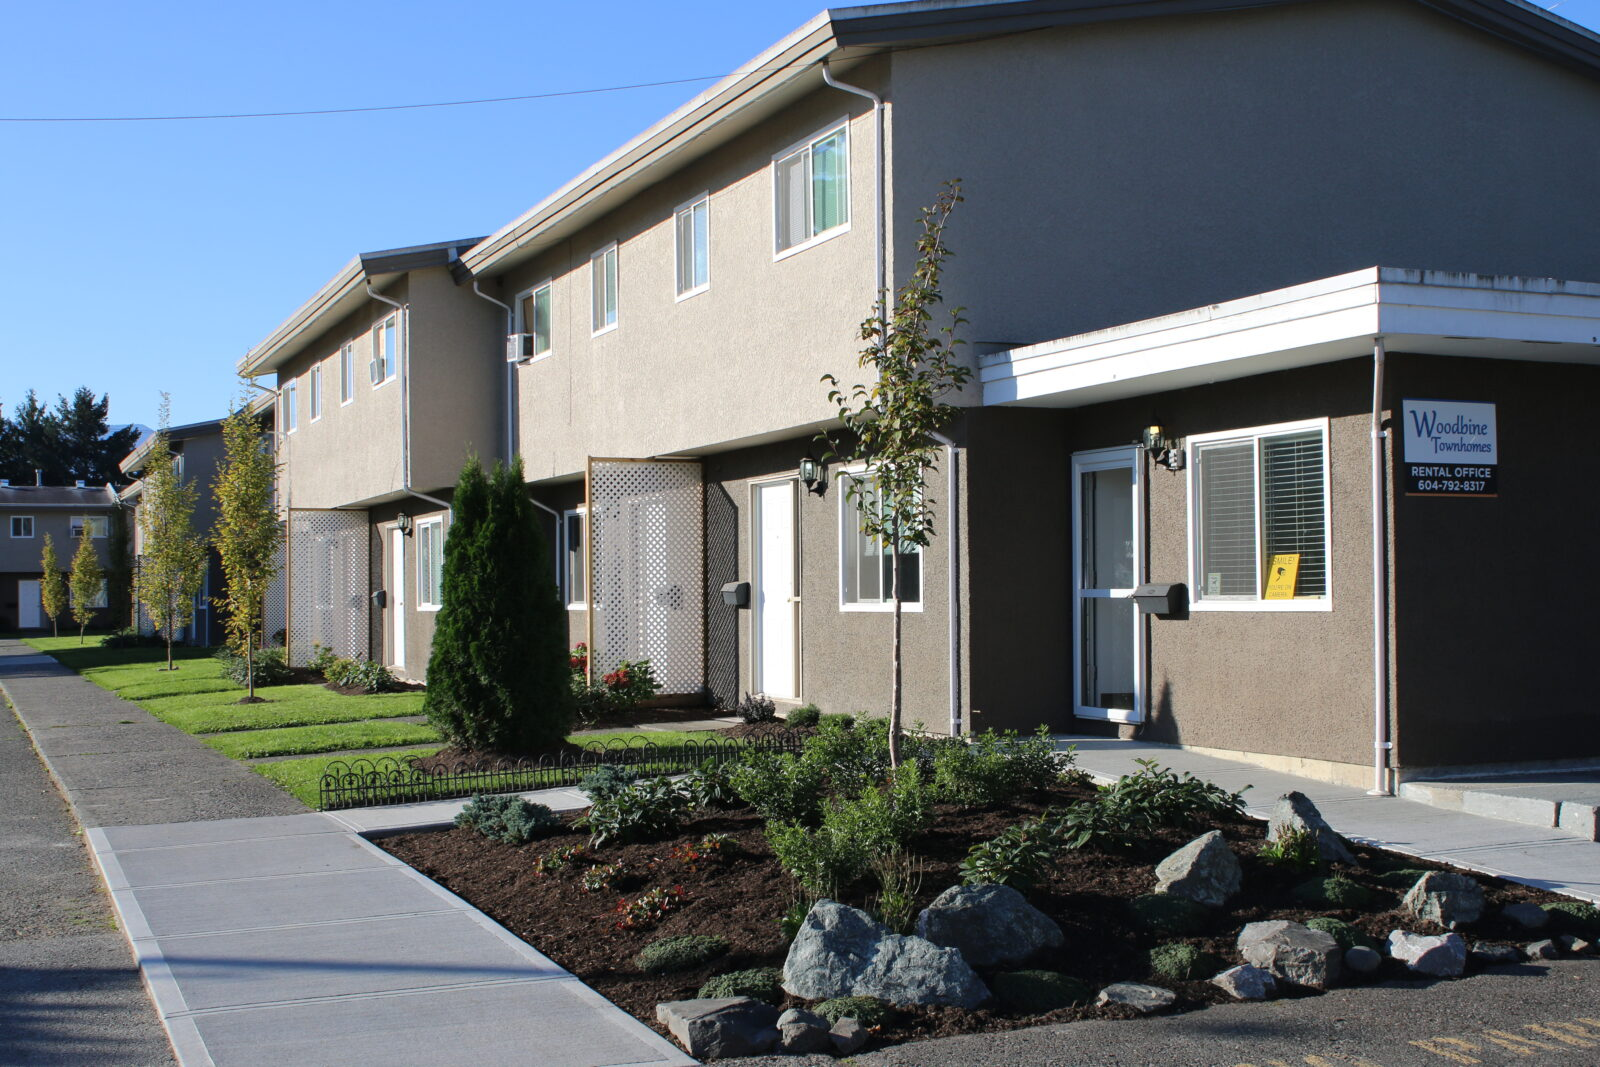 3 Bedroom Townhome for Rent  Chilliwack BC  Chilliwack Apartments for Rent in Chilliwack BC